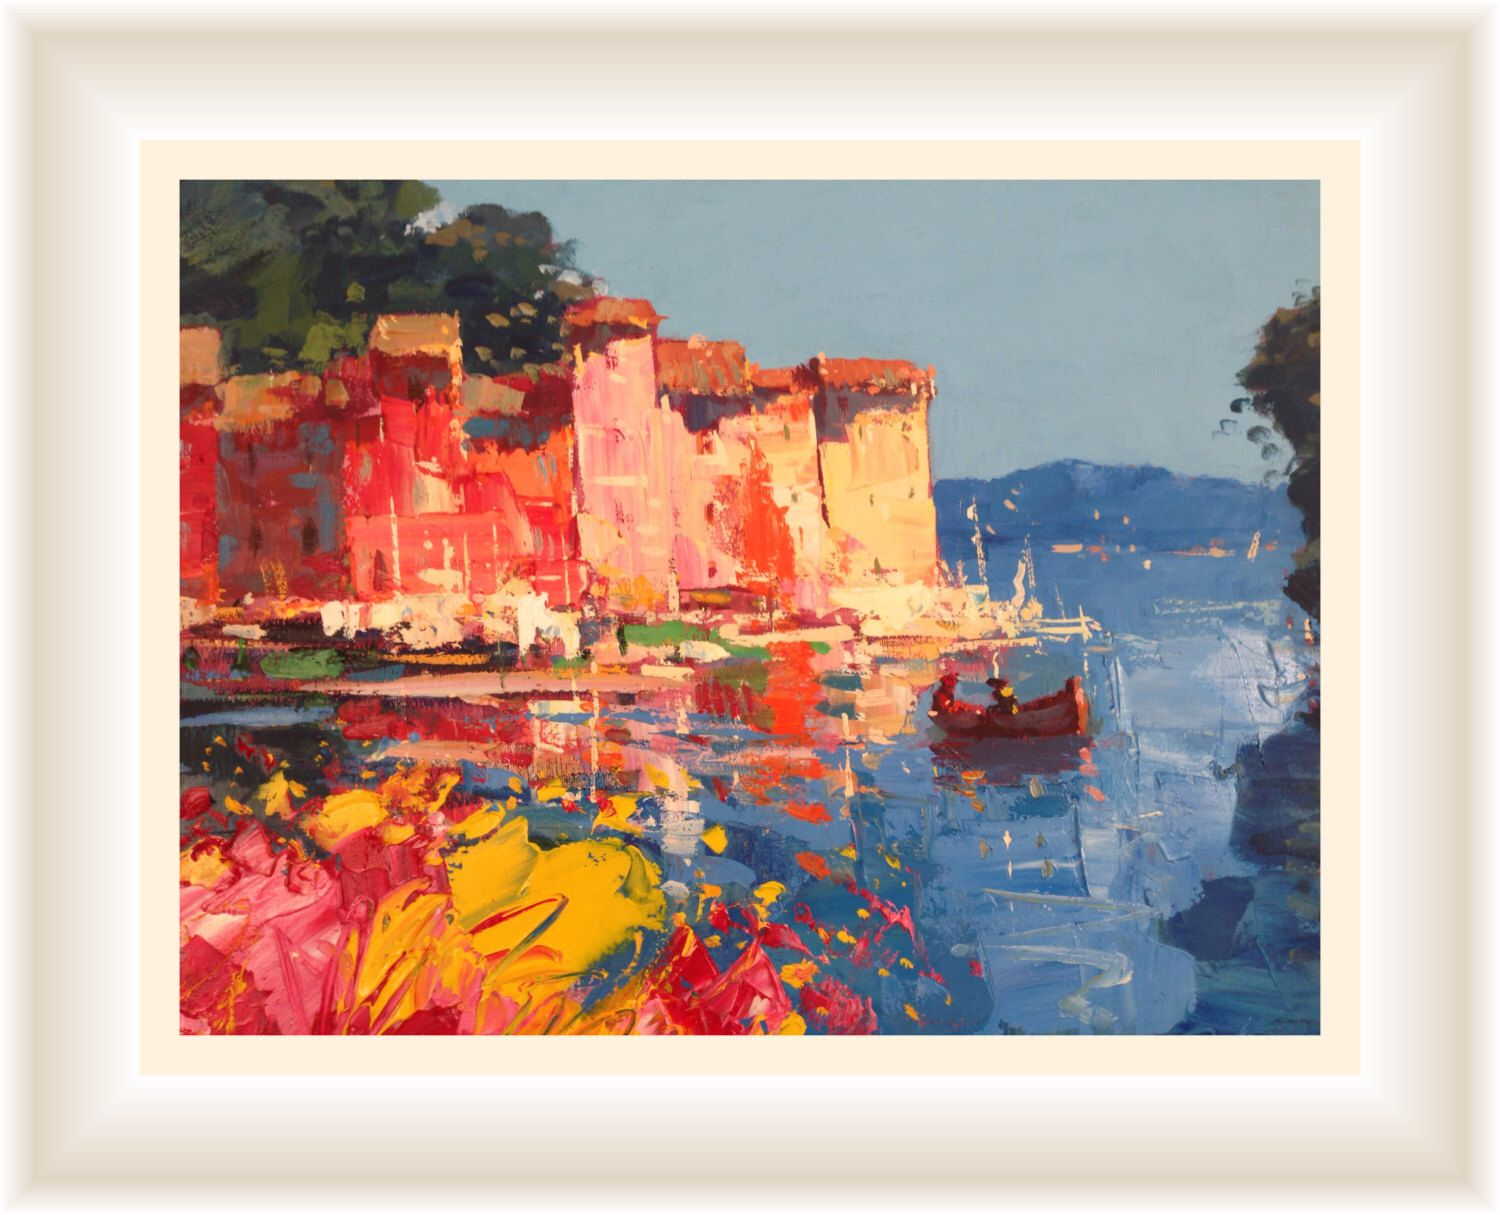 Flowers at portofino original painting abstract oil canvas wall art home decor also rh pinterest